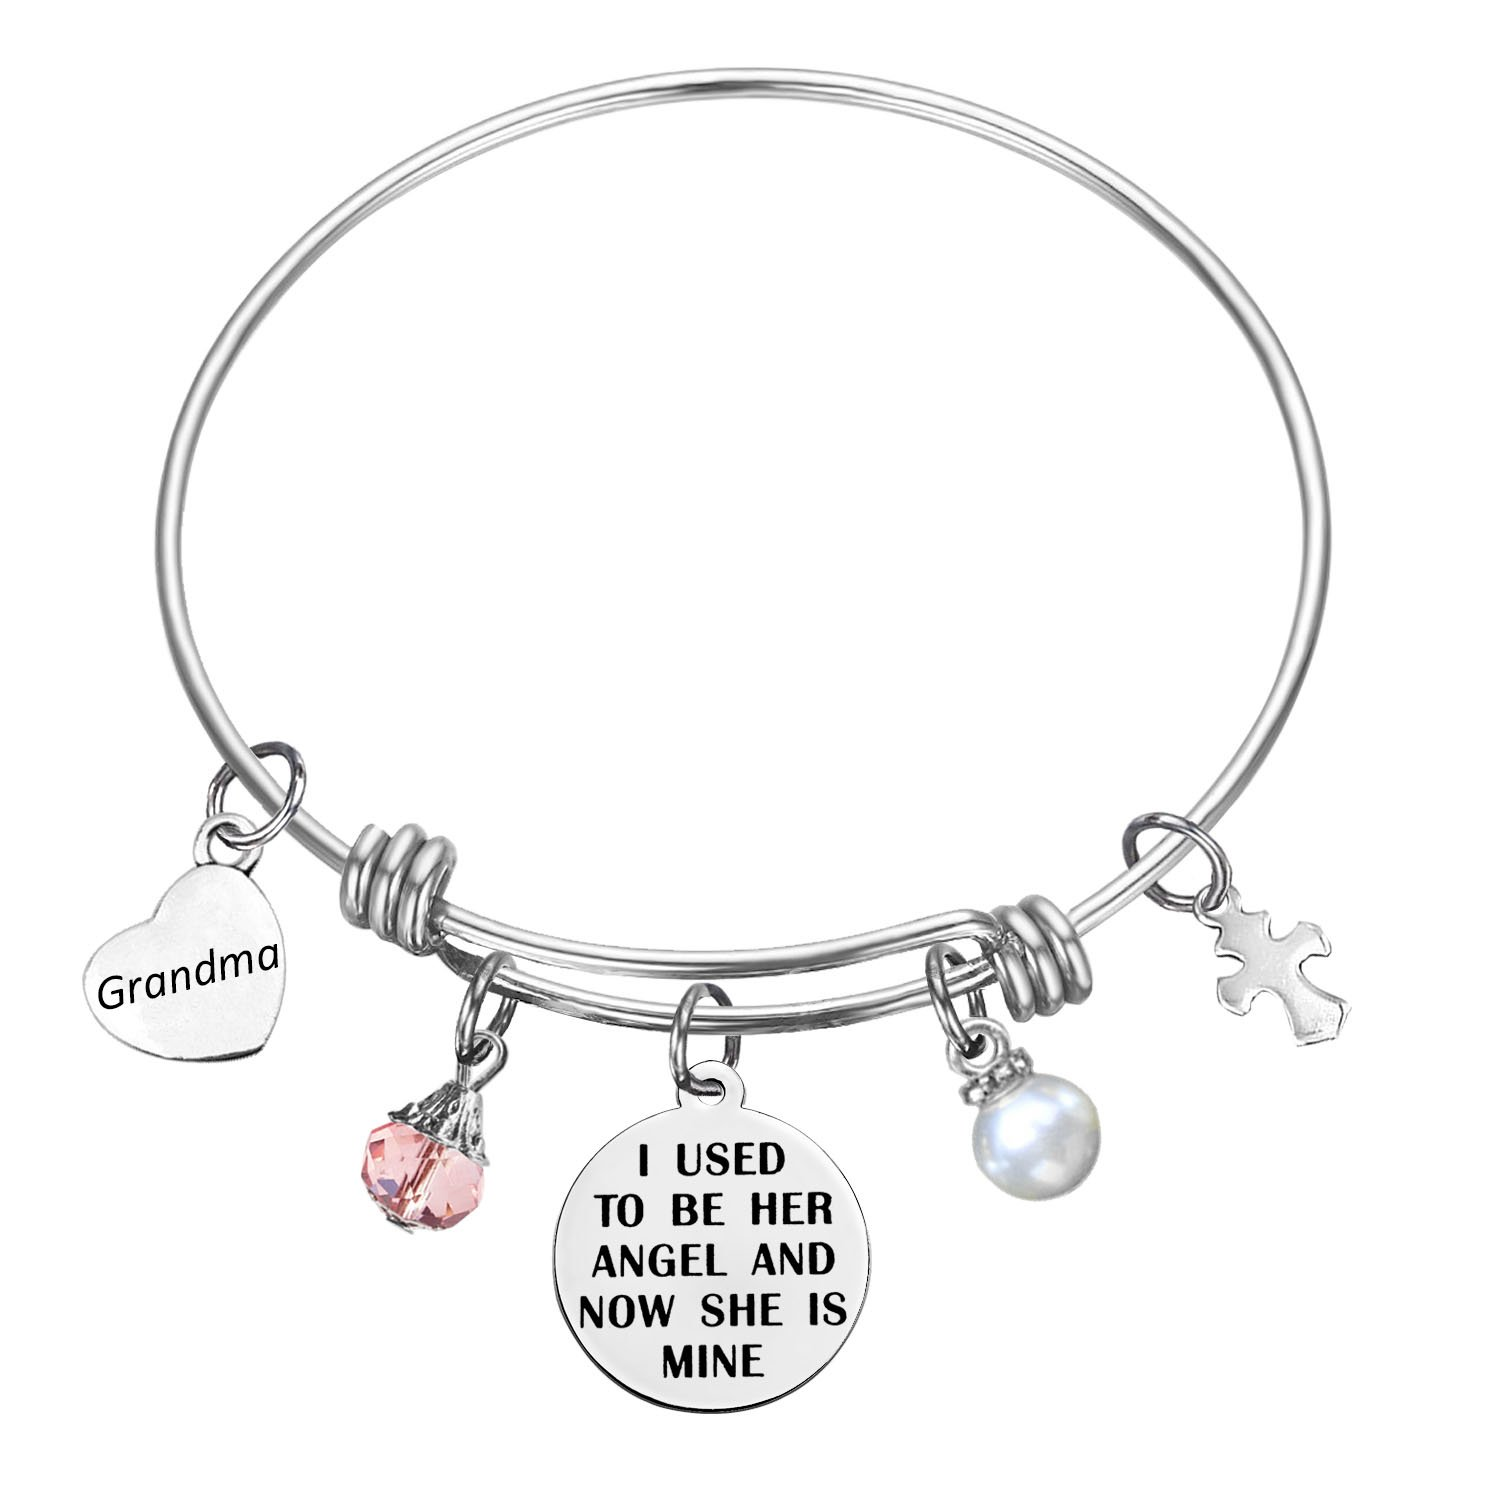 SOOFUN Memorial Jewelry I Used To Be His/Her Angel Now He's/She Mine Memories Expandable Bangle Bracelet (In memory of grandma)